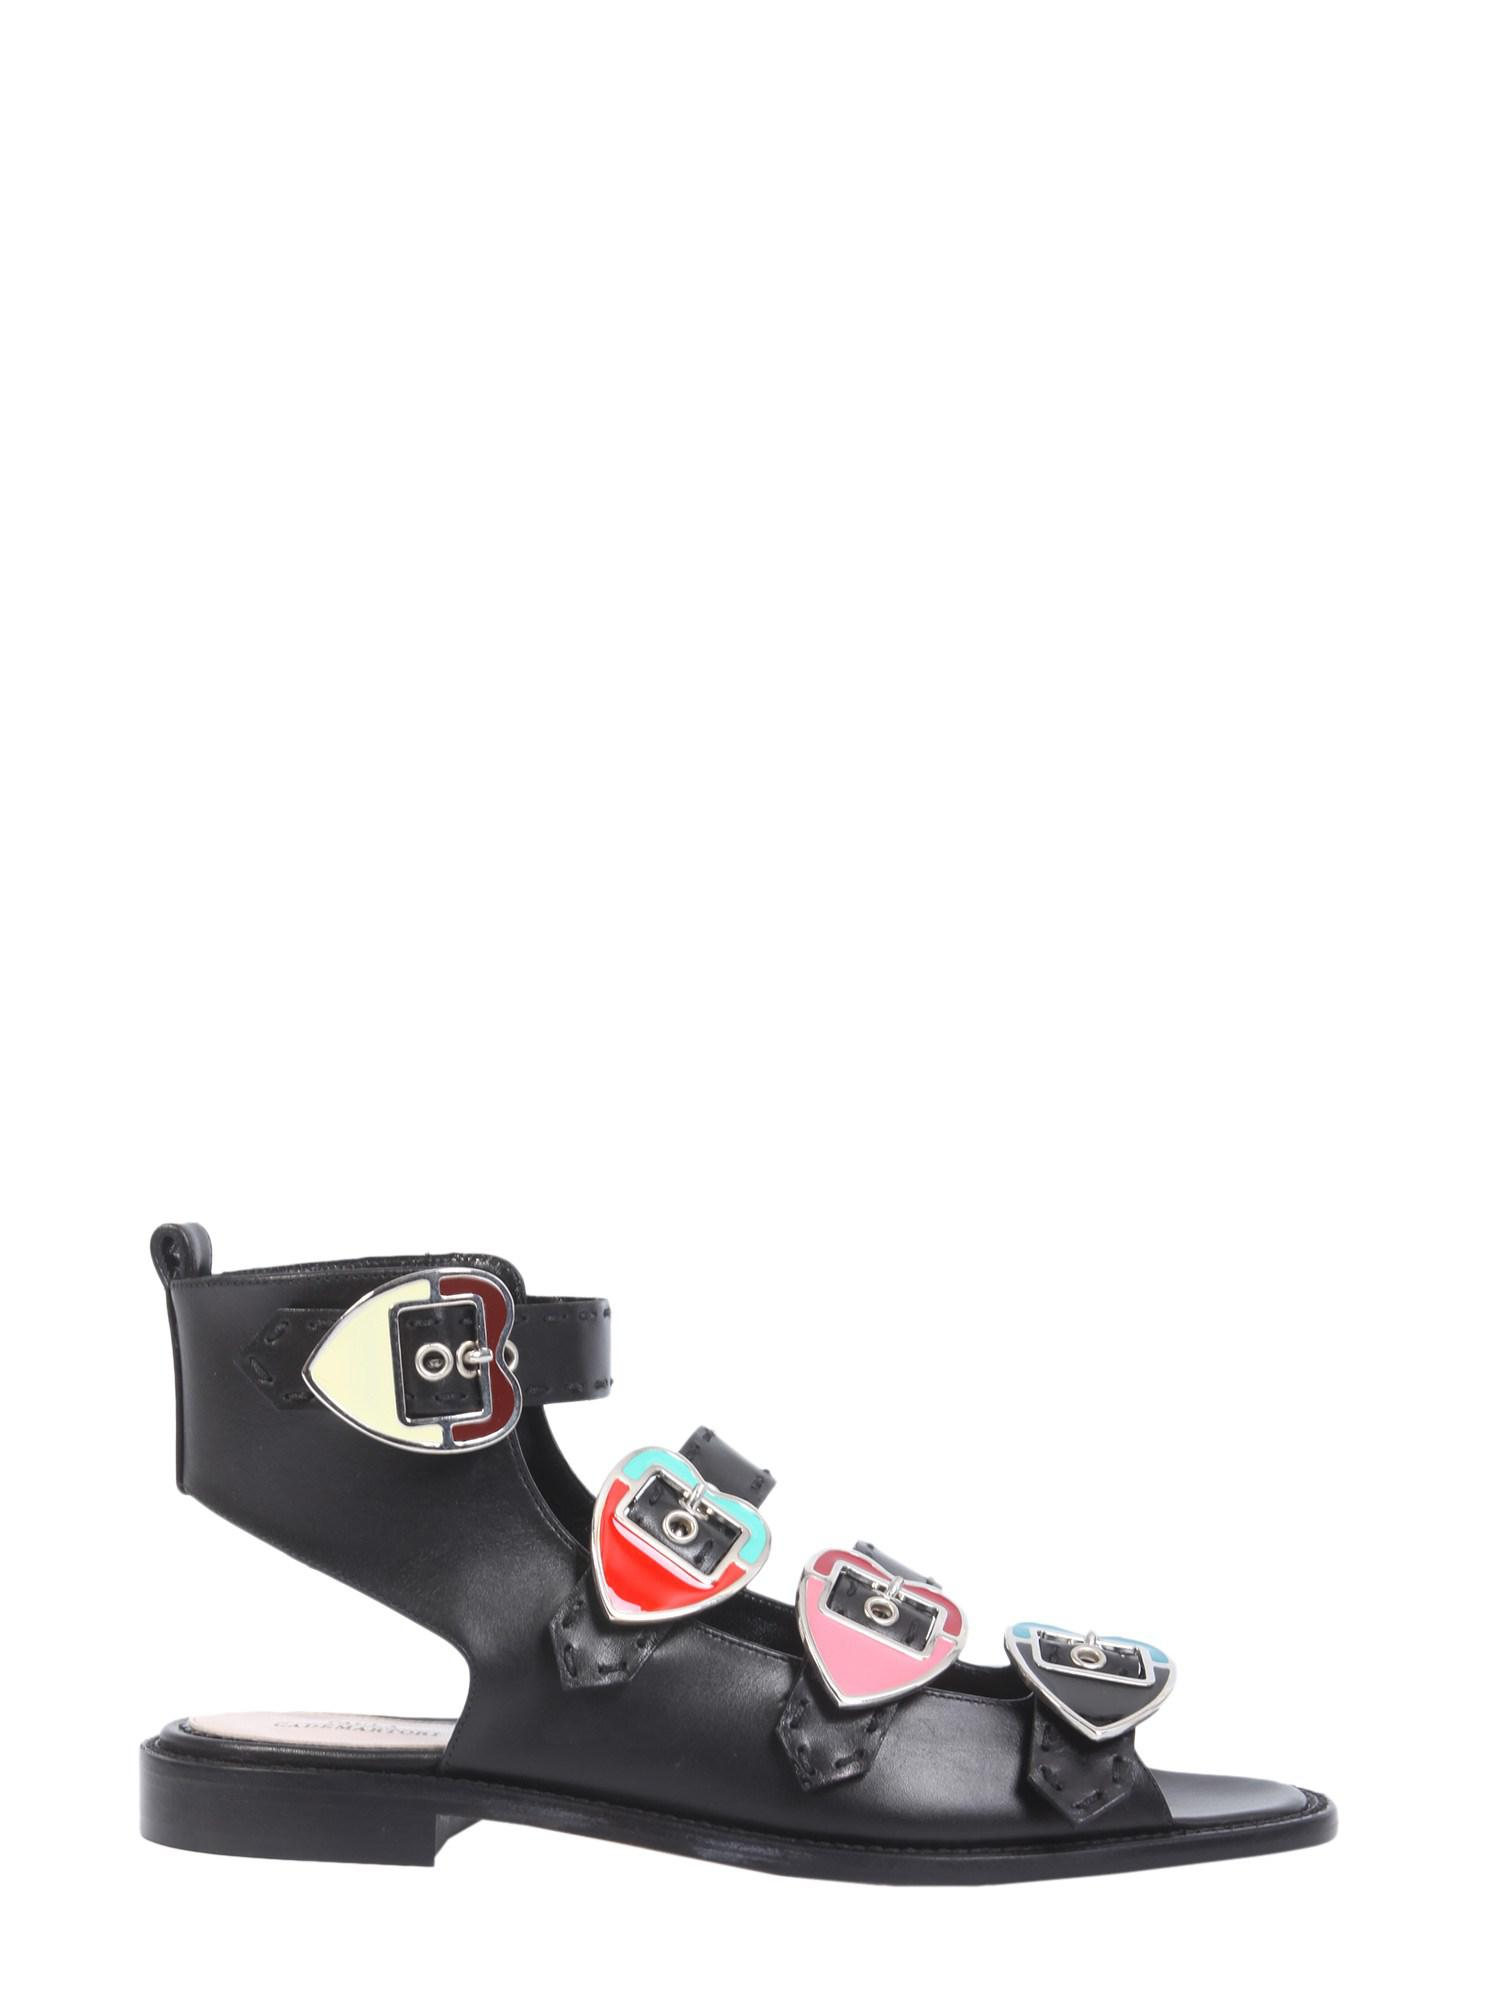 Black sandals with pearly inserts Paula Cademartori Get Online Cheap Sale Discounts CeRrM64